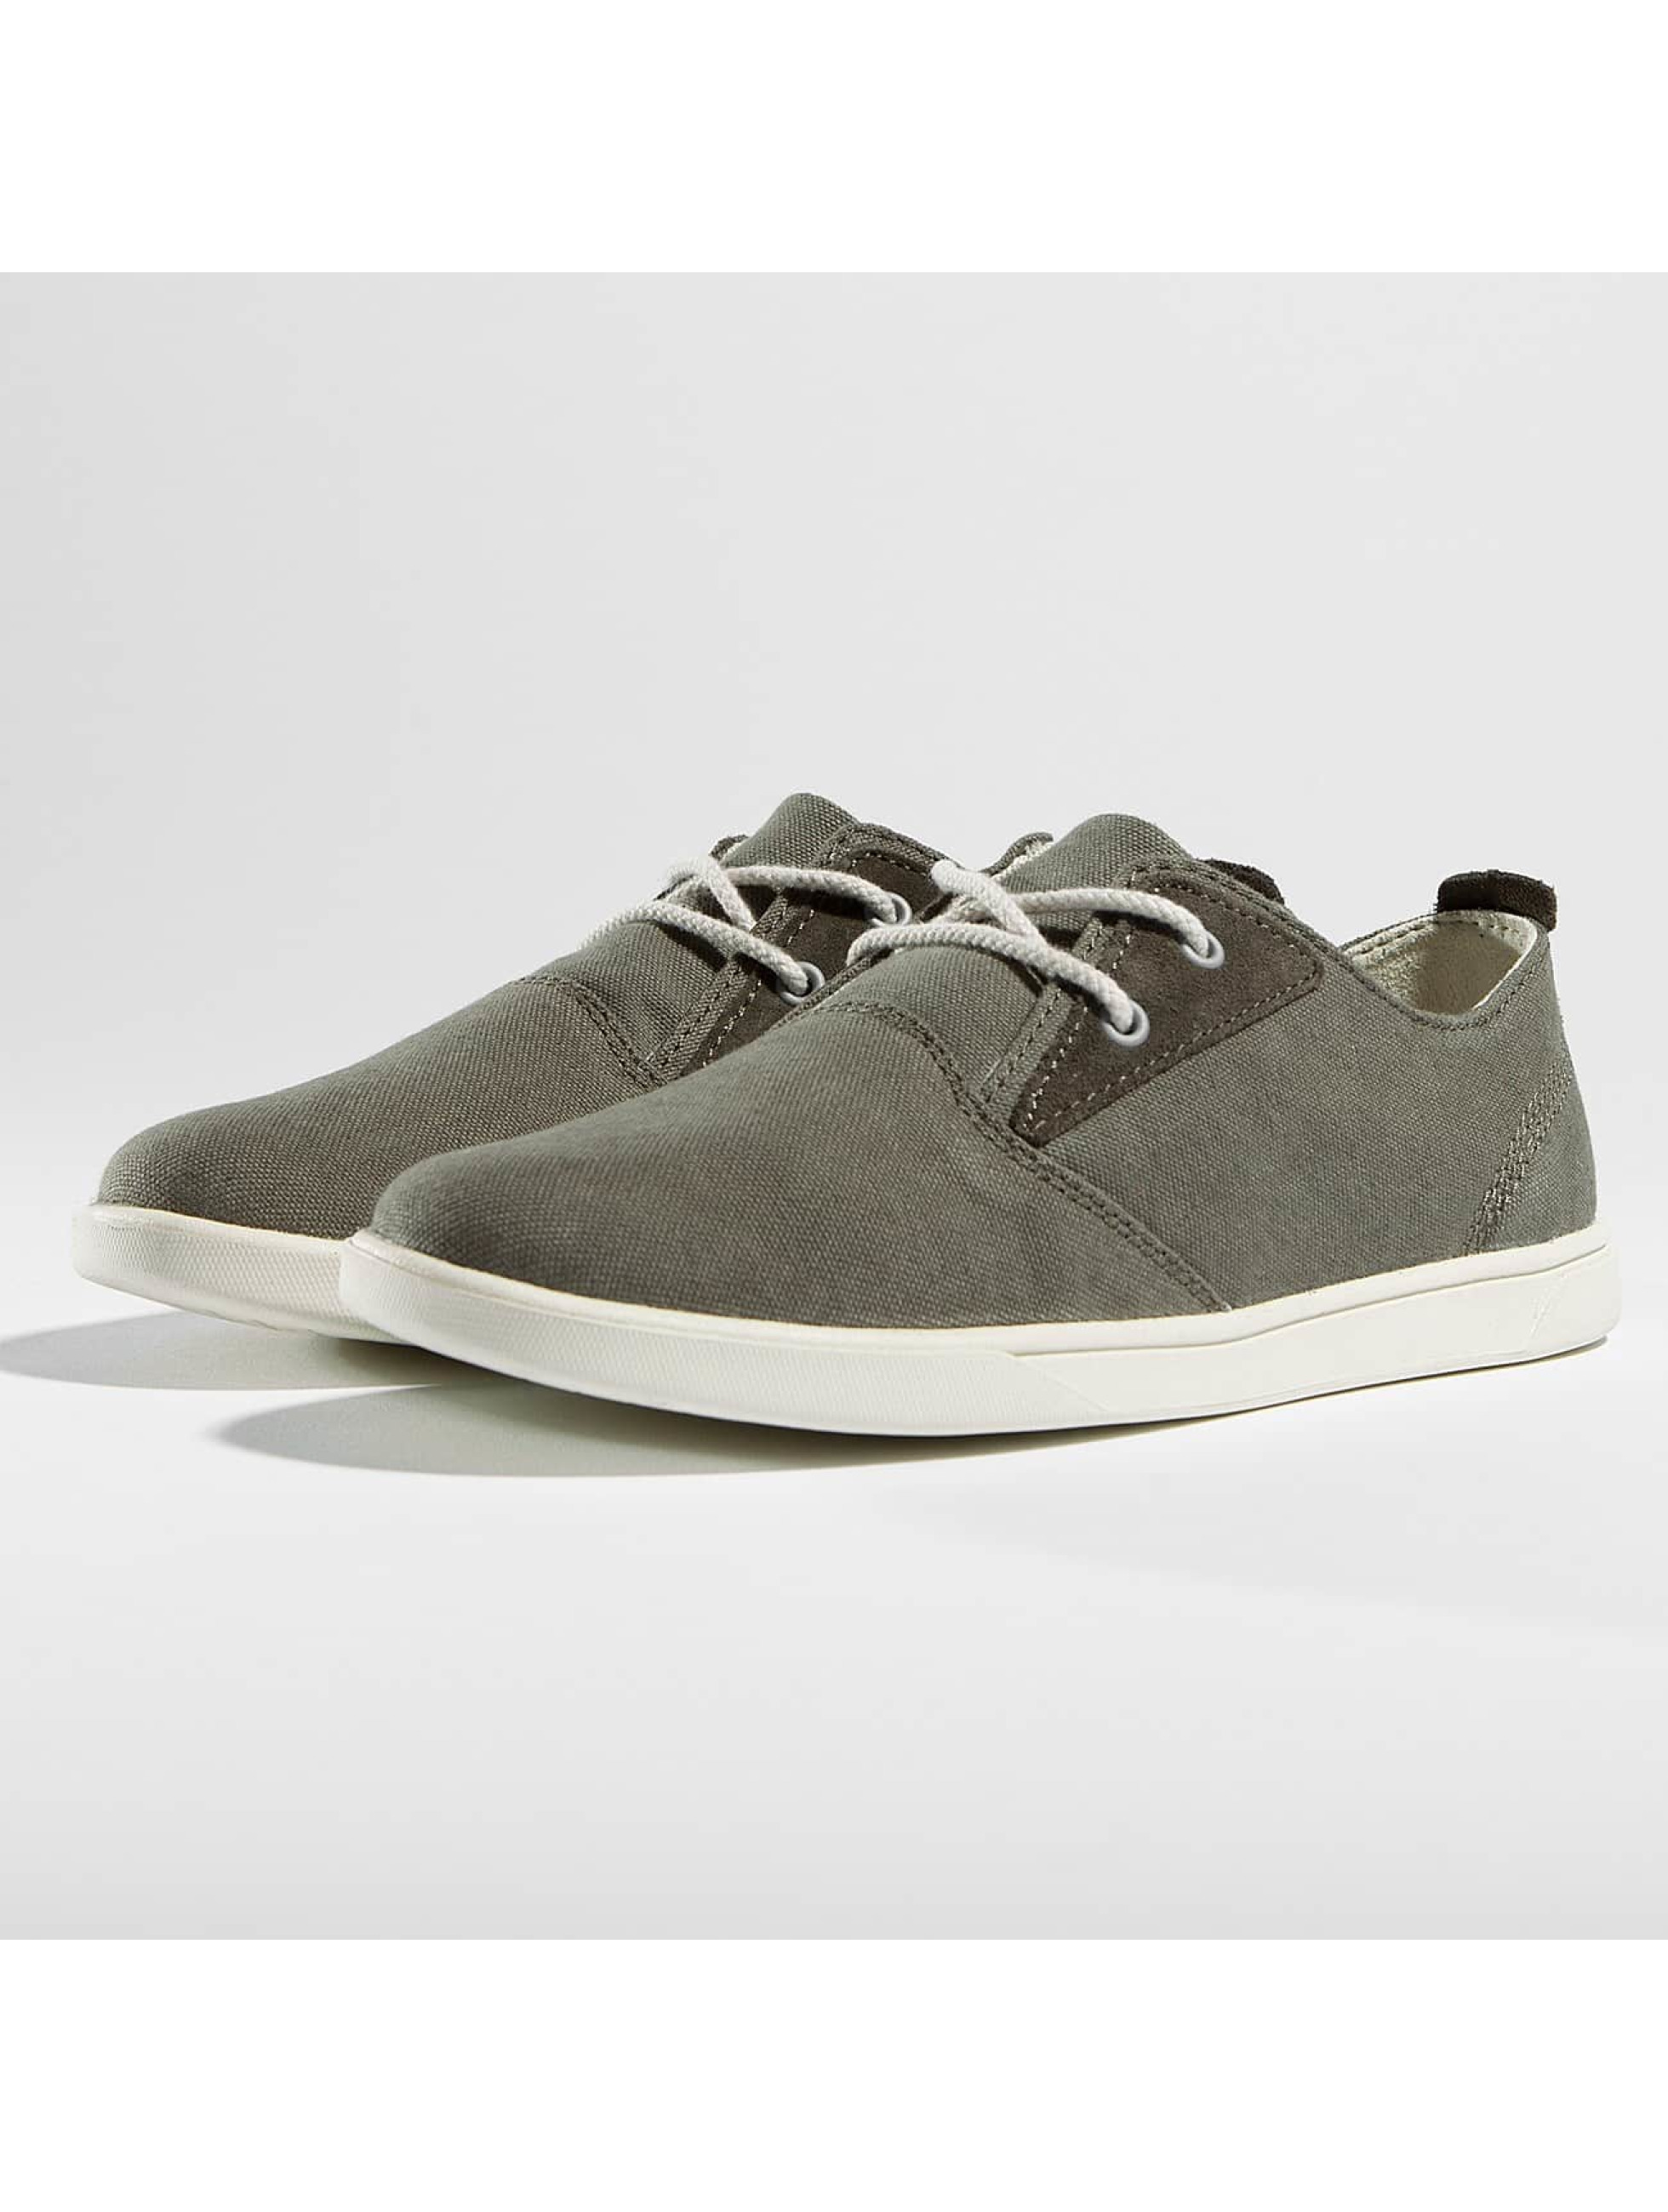 Timberland Groveton Canvas Oxford Sneakers Canteen Sale Angebote Türkendorf